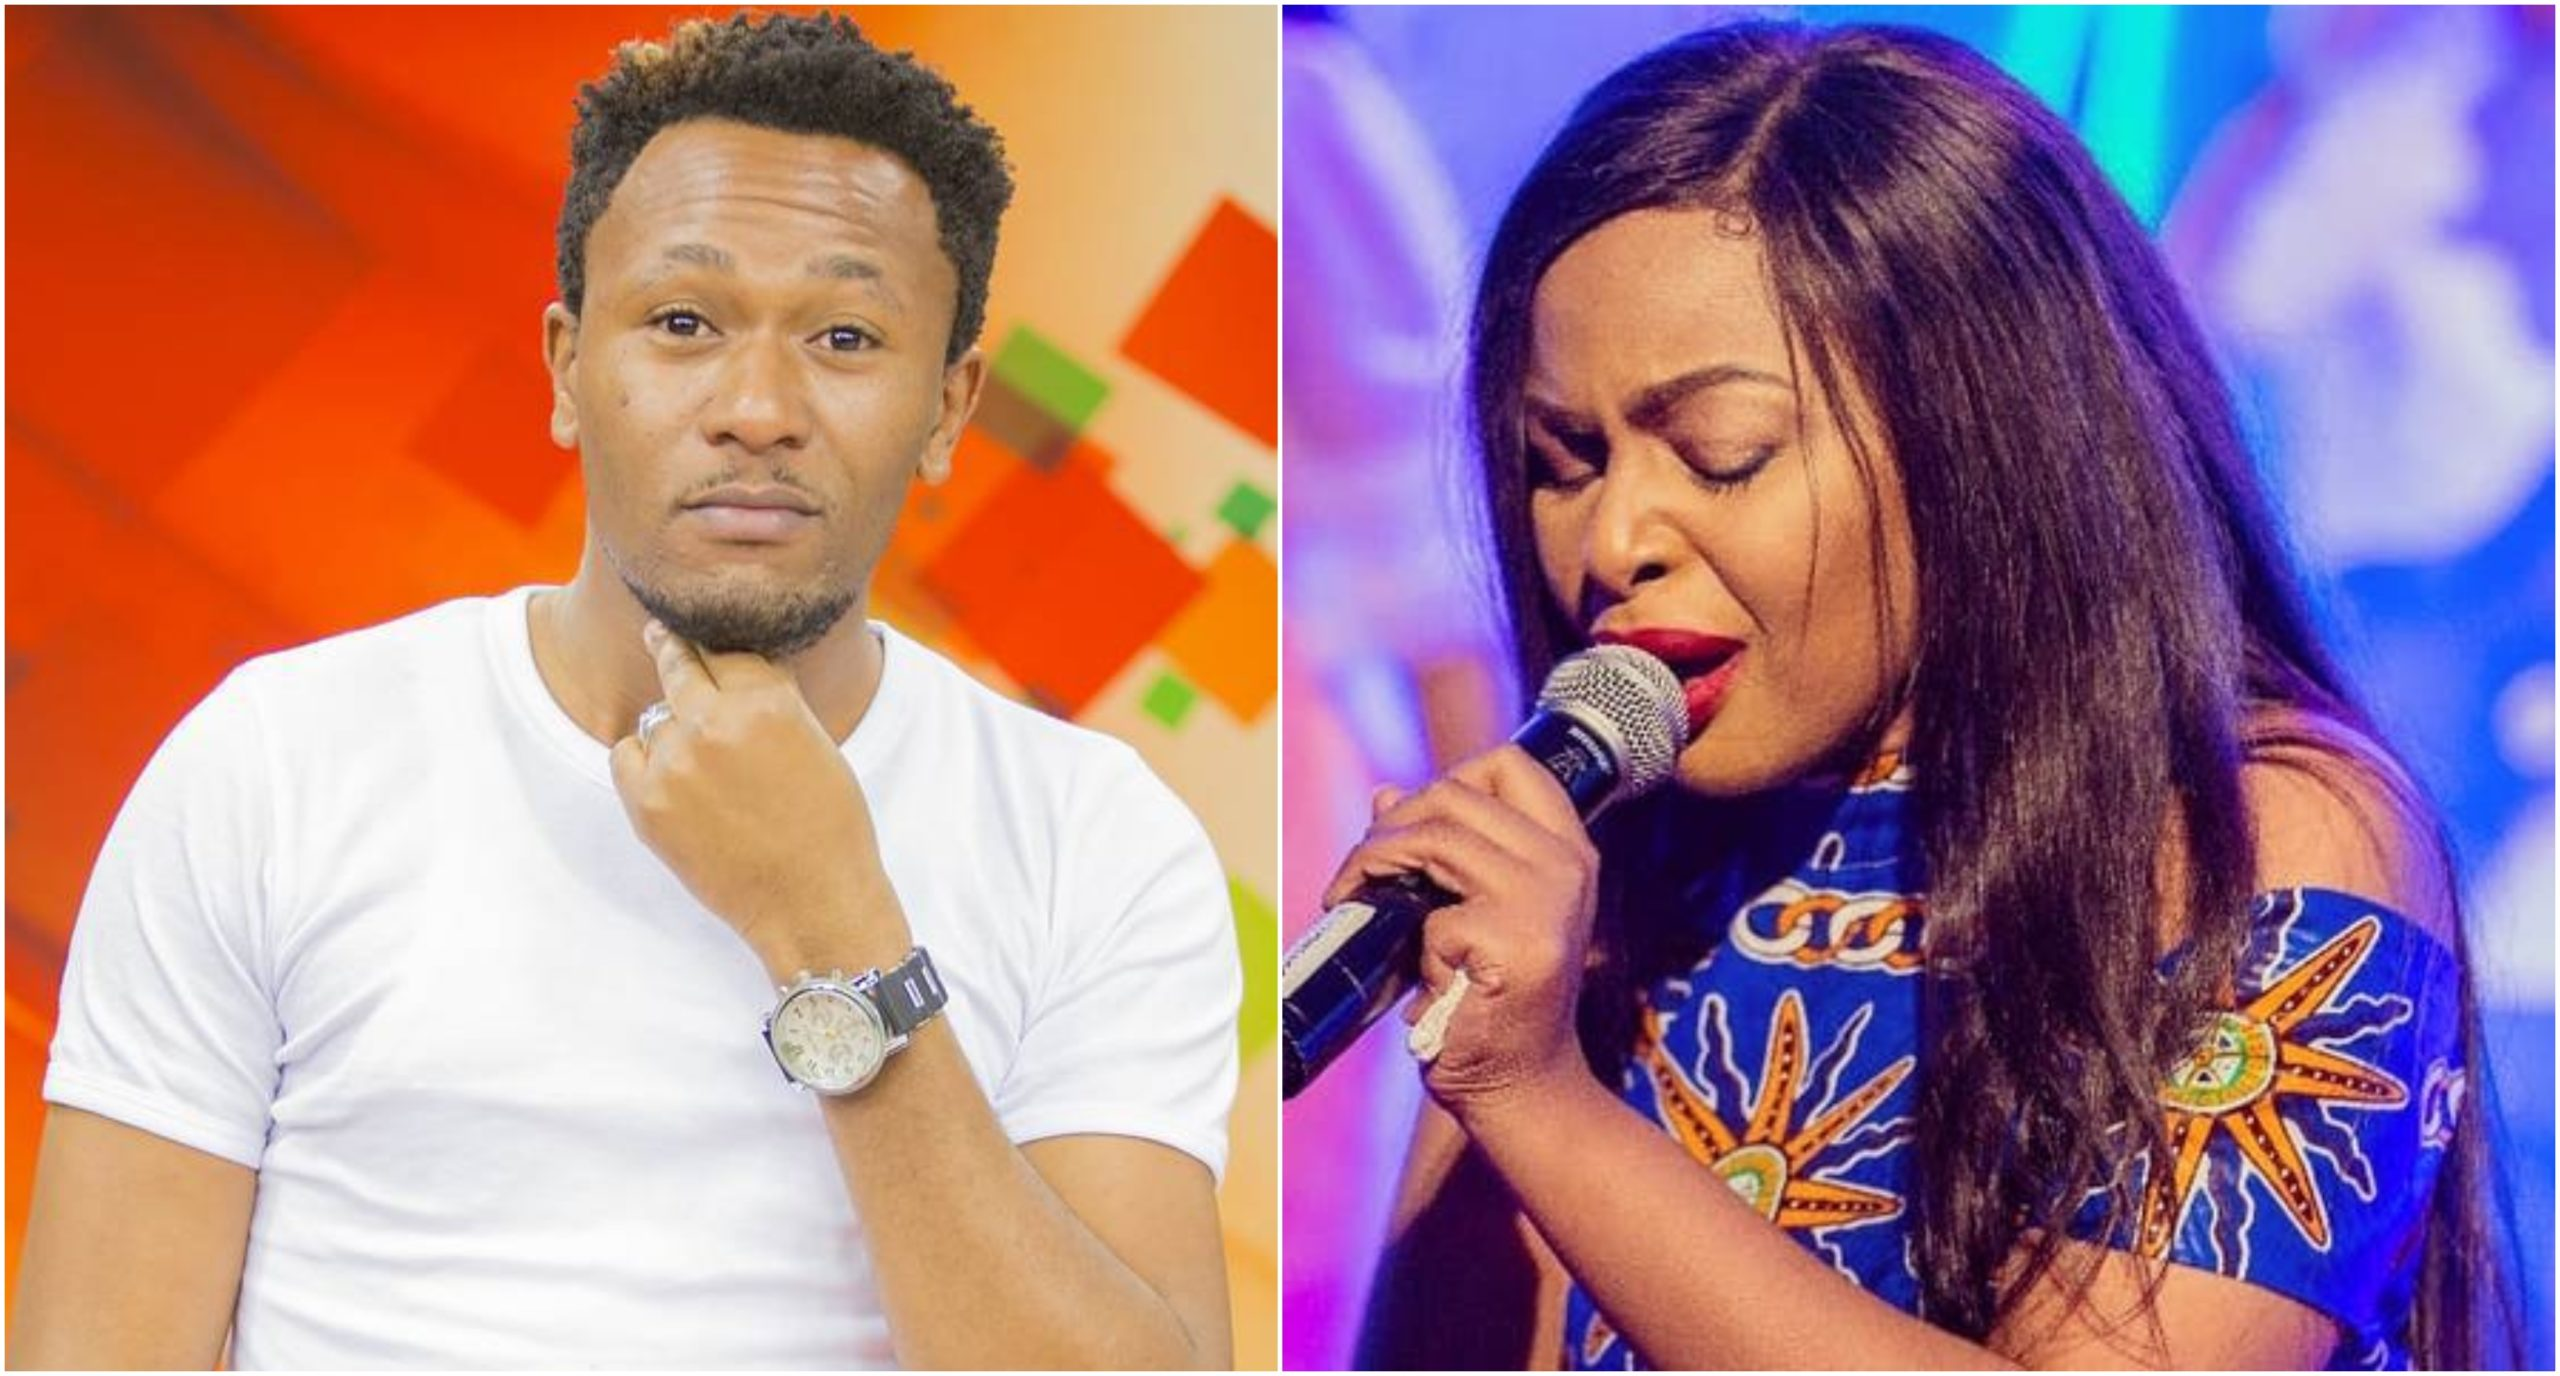 Seductive videos of DJ Mo's side chick emerge leaving many mesmerized by her dancing skills (Videos)